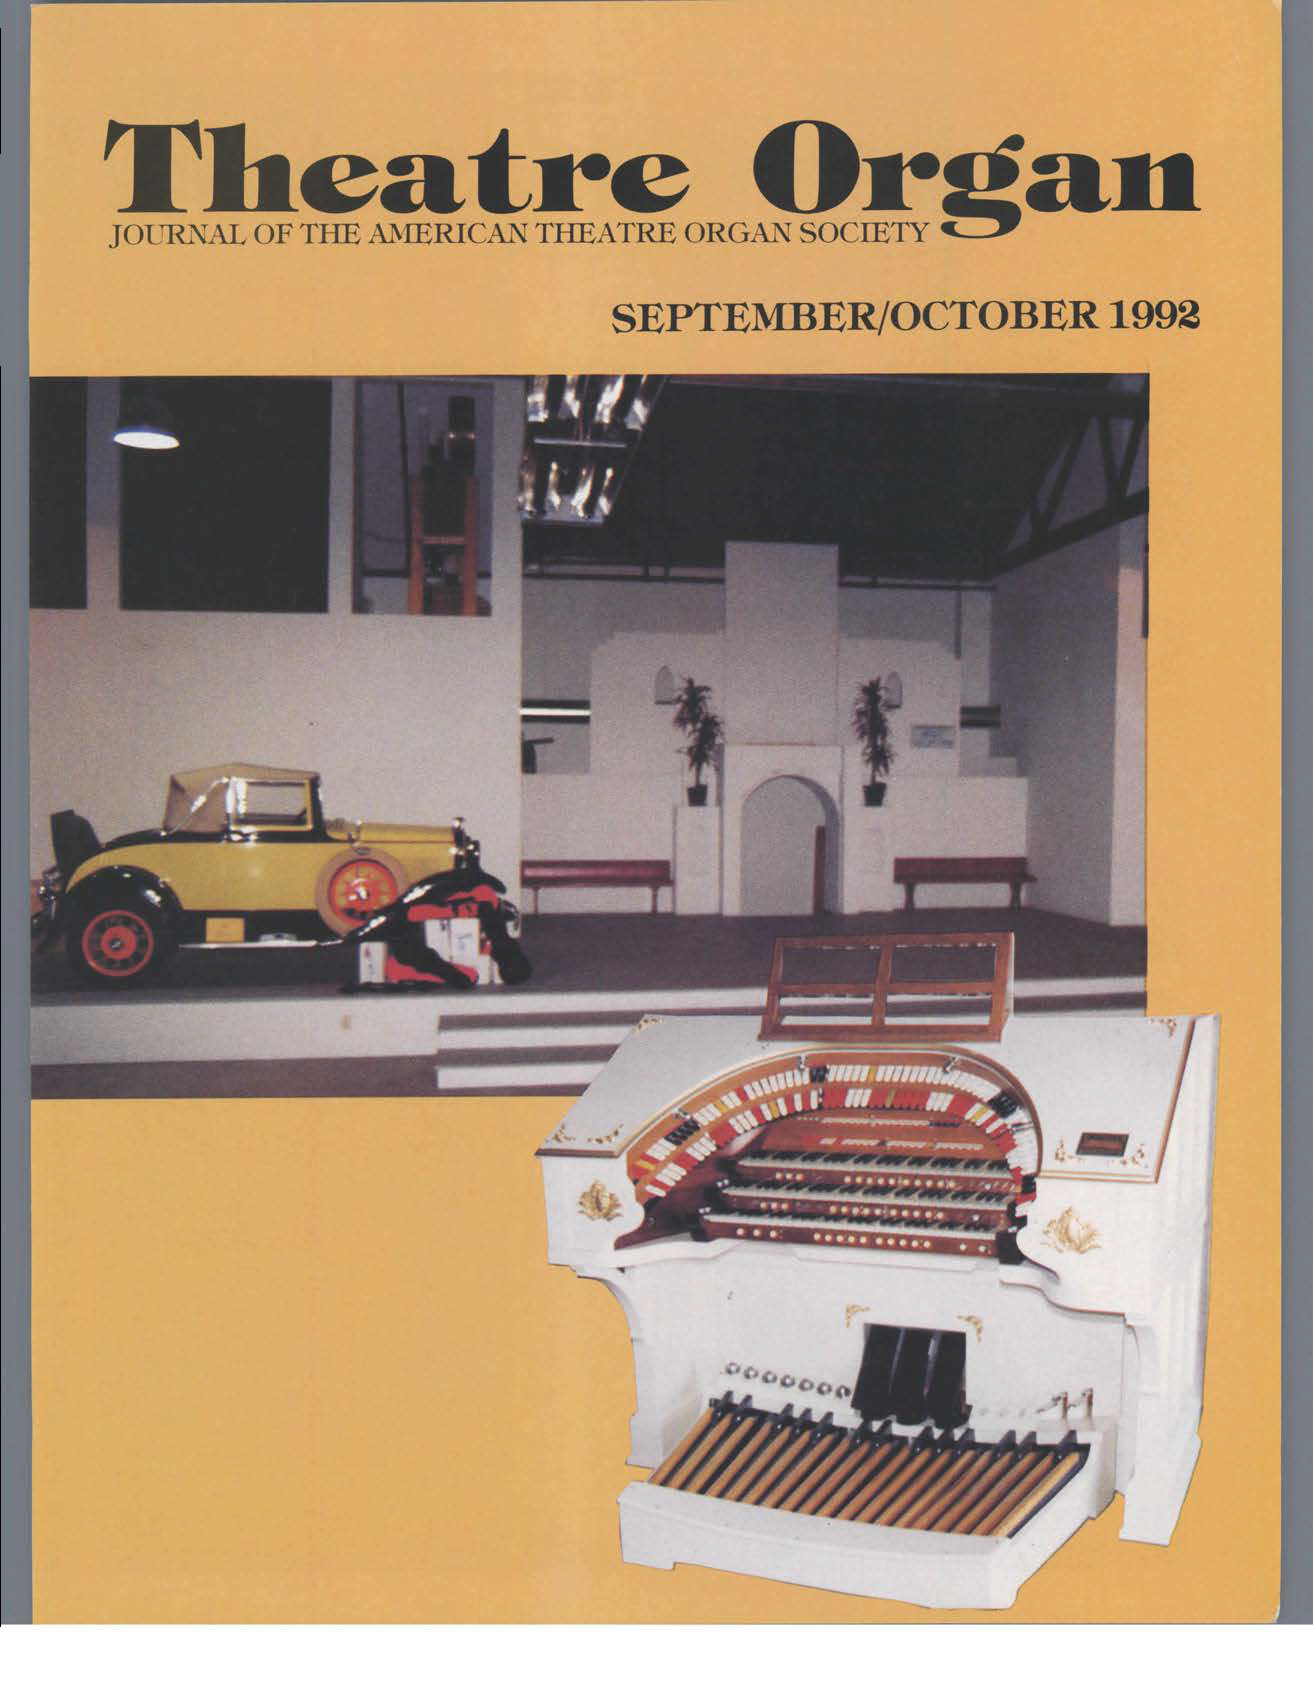 Theatre Organ, September - October 1992, Volume 34, Number 5